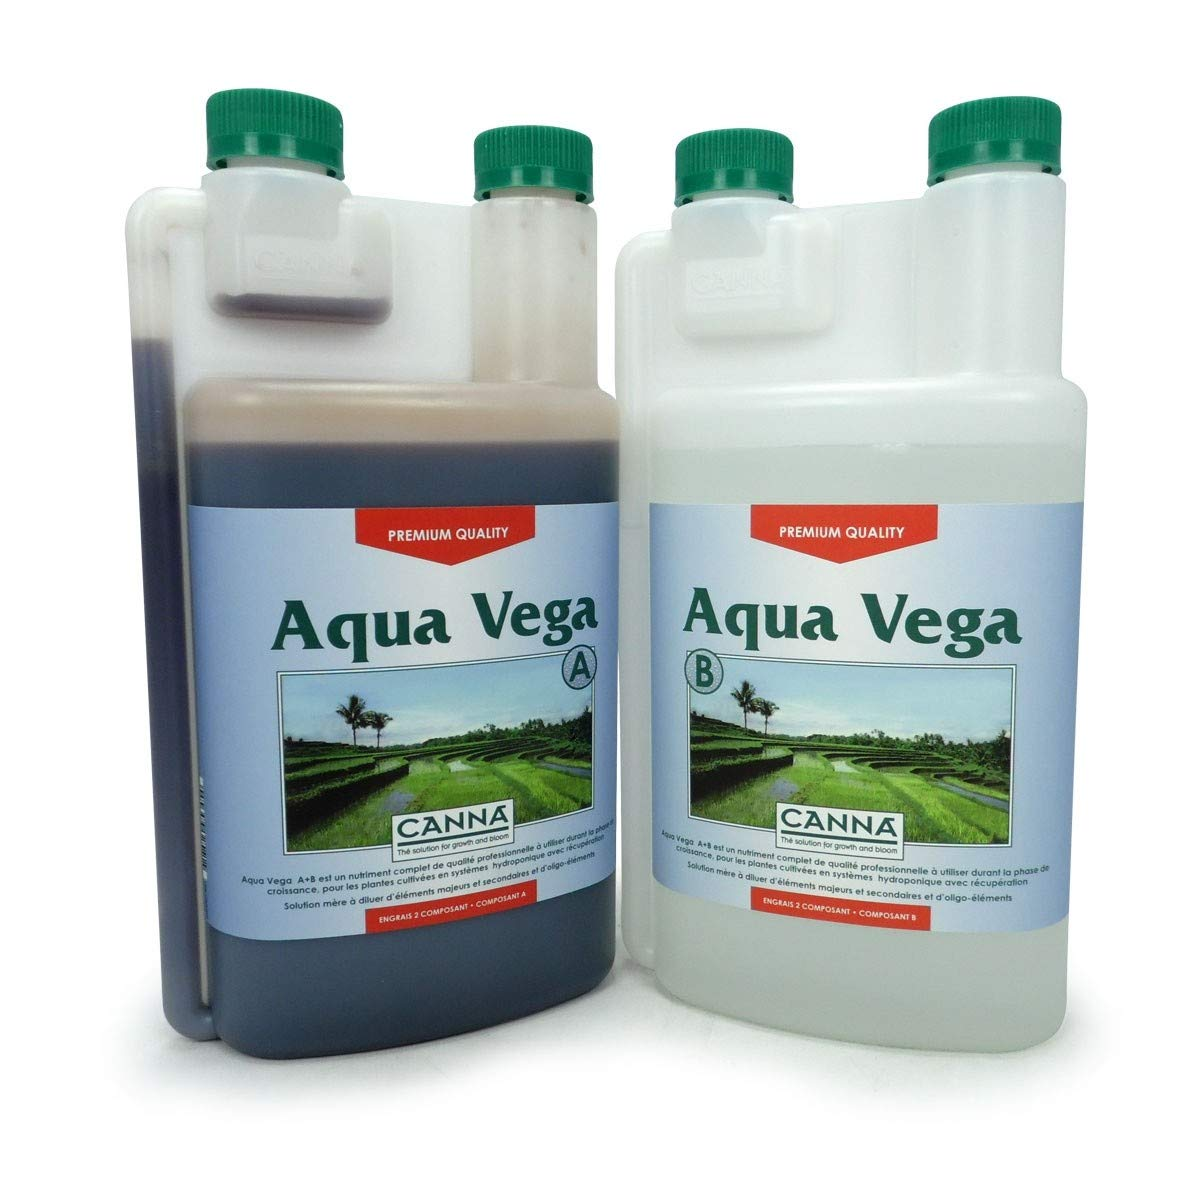 Canna Aqua Vega A + B (2 x 1 L) Plant Additive